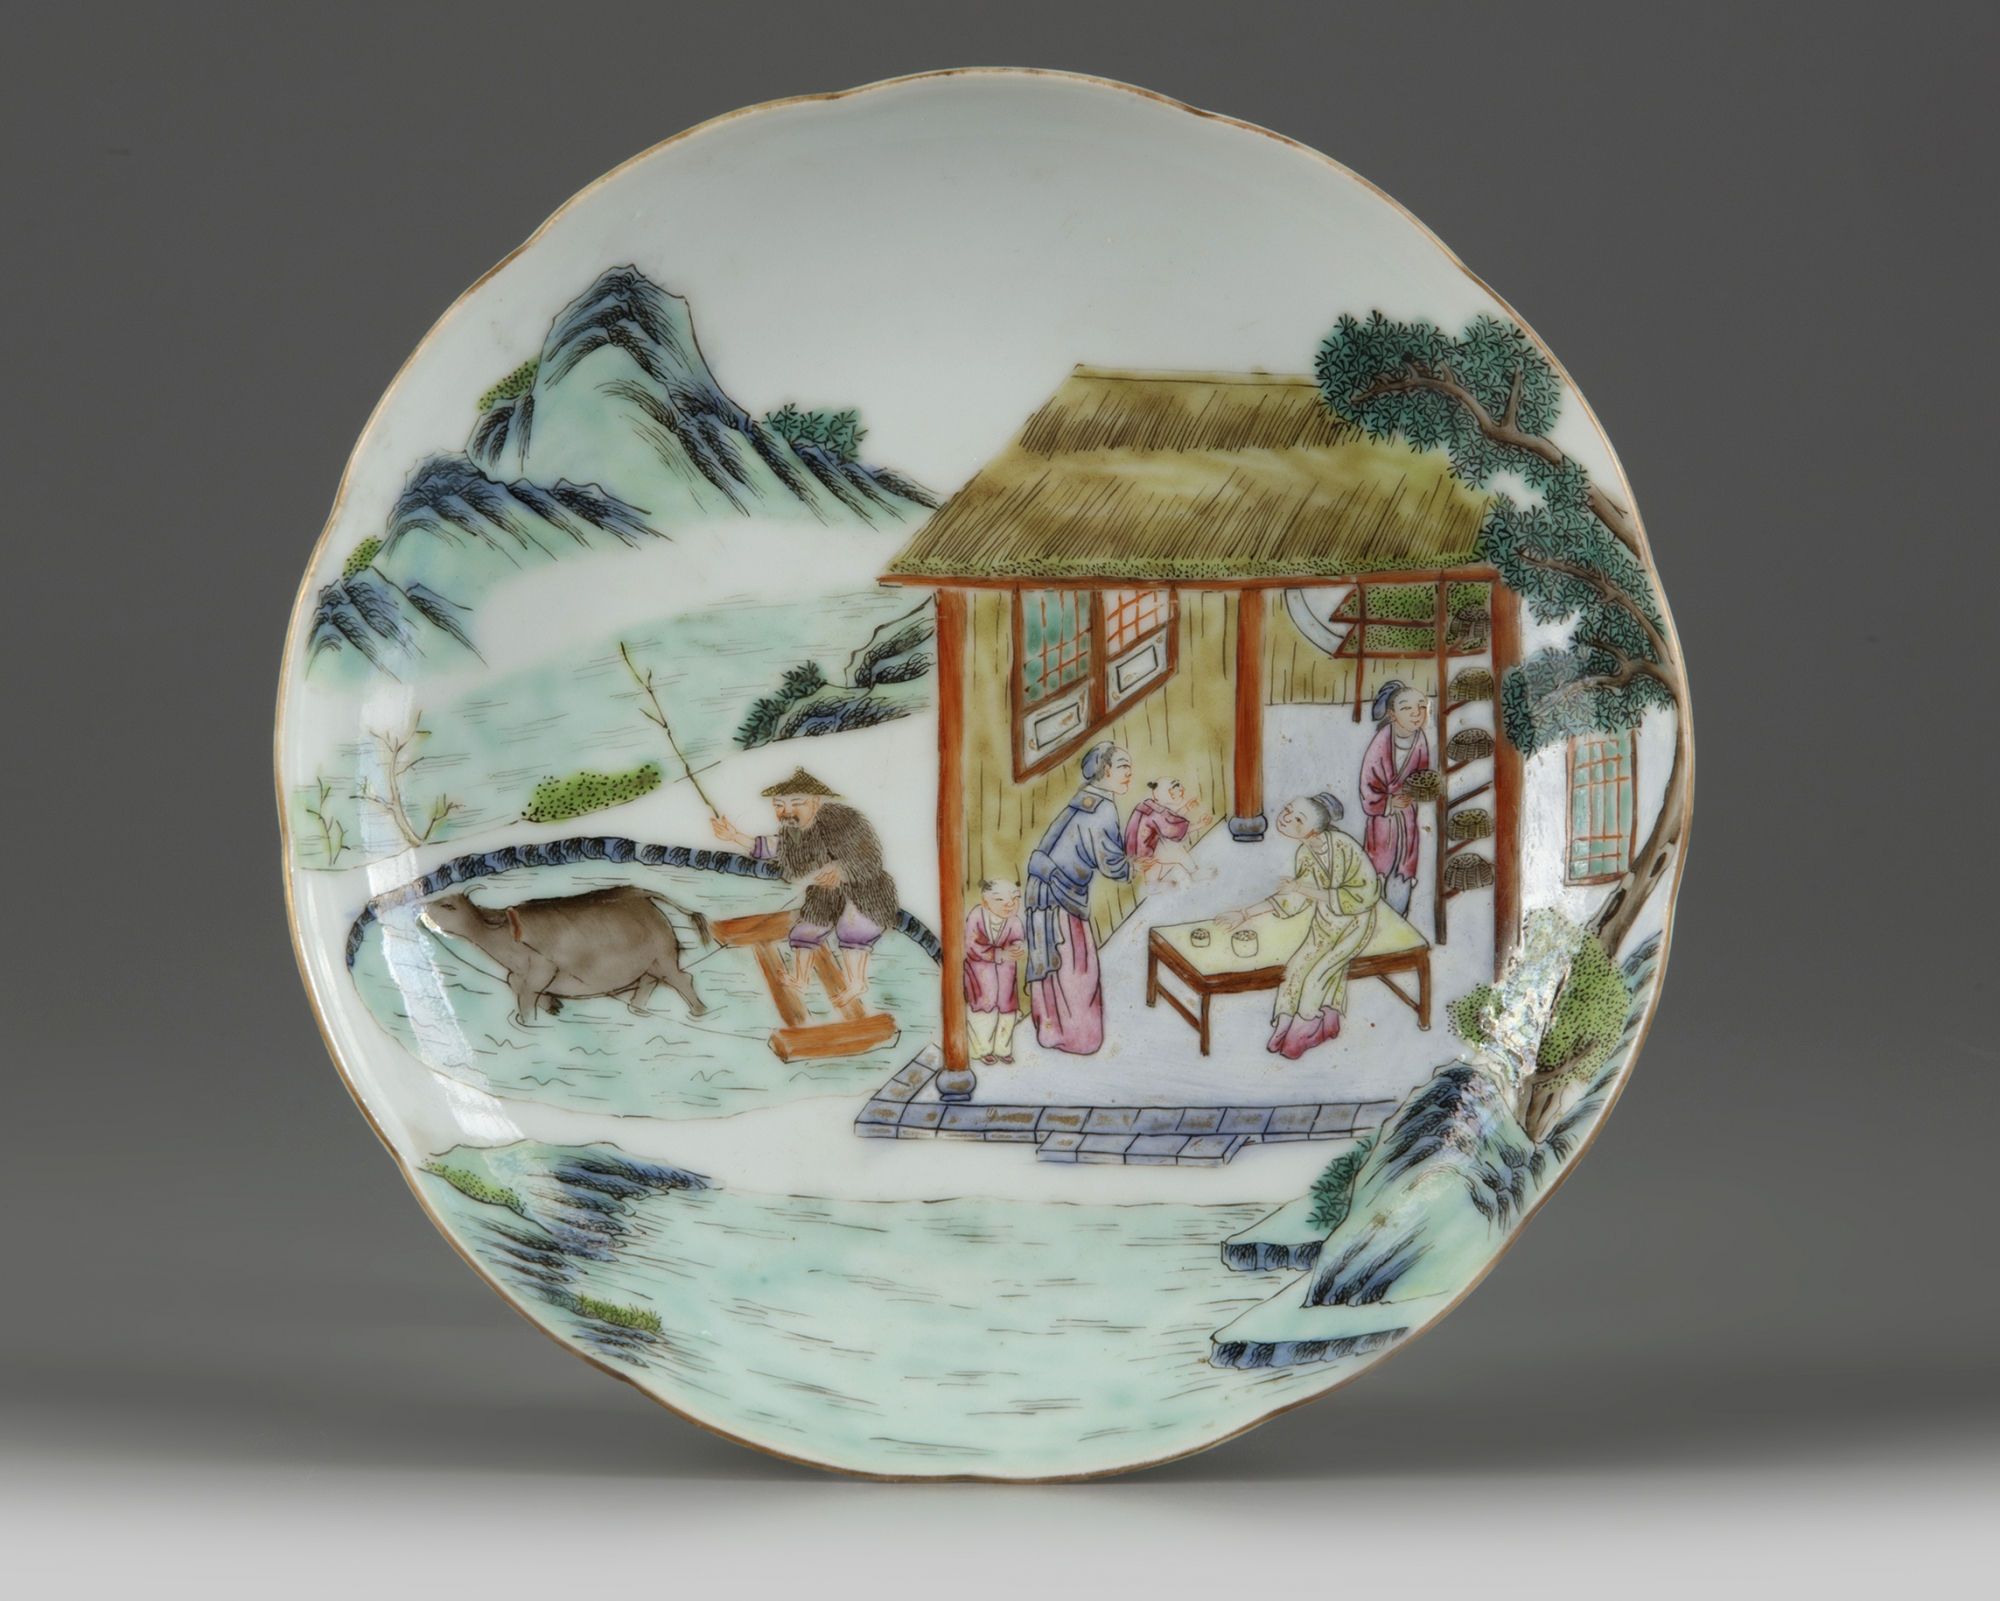 Lot 44 - A Chinese famille rose 'tilling' dish